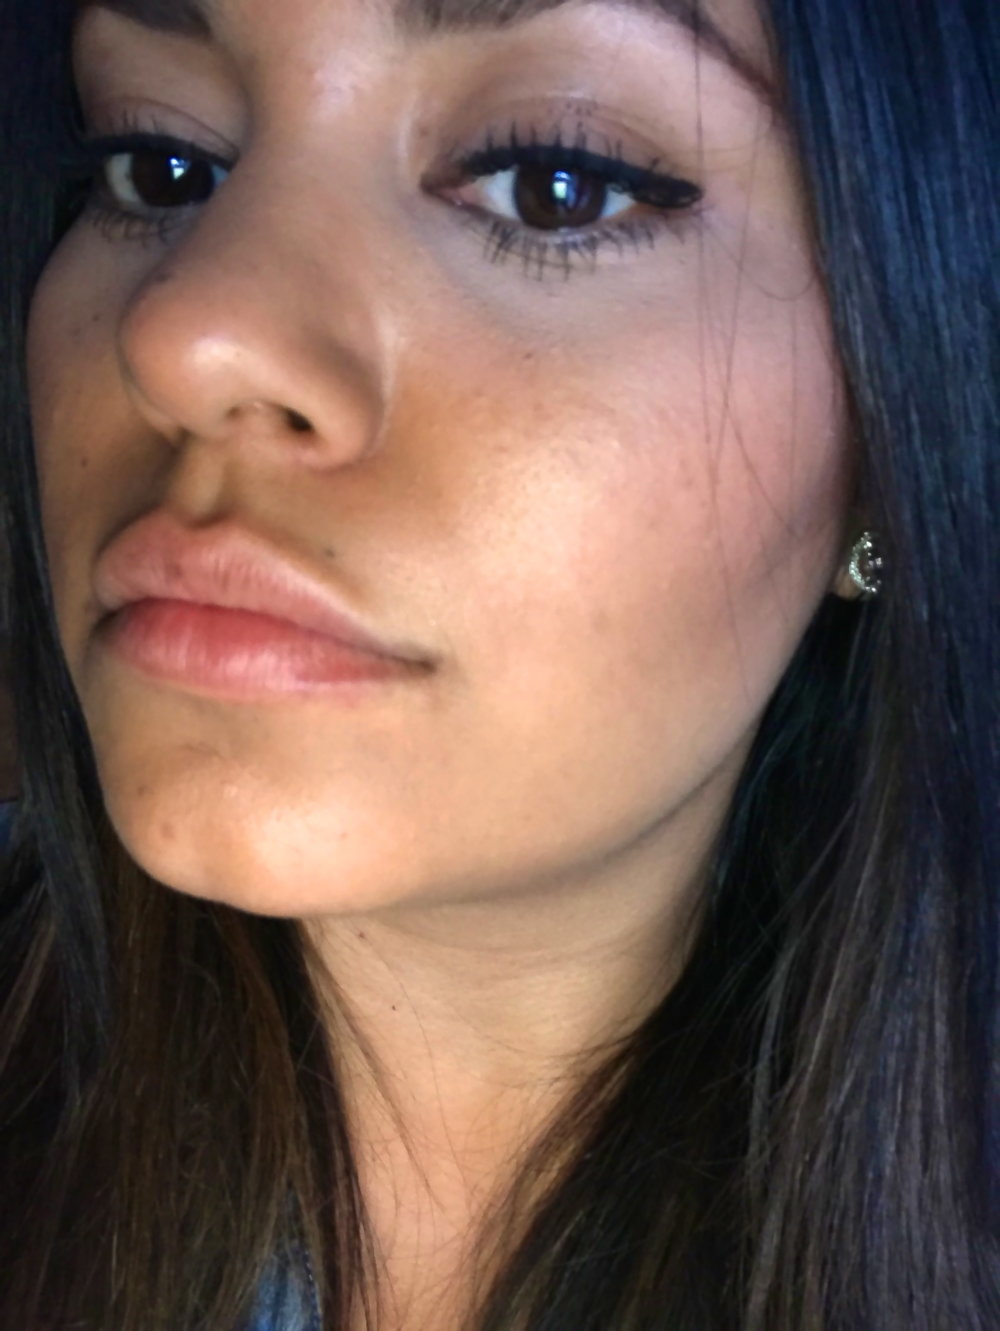 Richelle-Hedlund-Lip-Procedure-Review-Before-After-Puckers-Pumps-Blog10.jpg